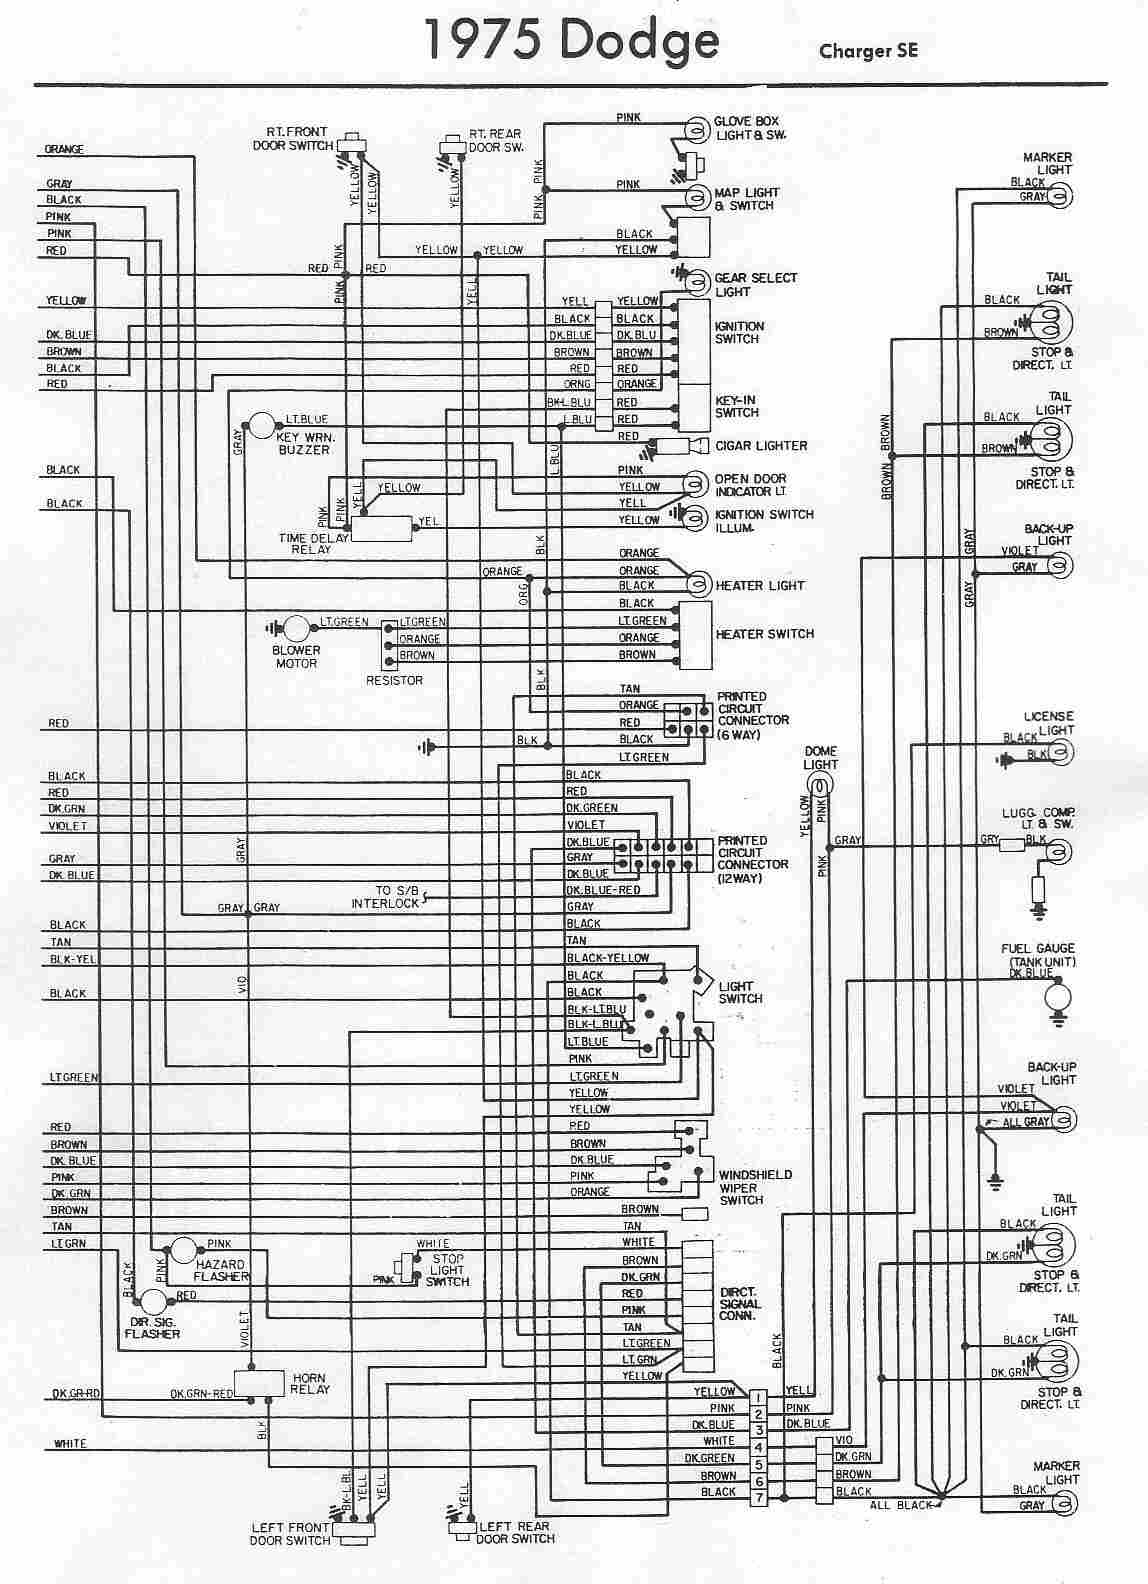 318 engine electrical diagram online wiring diagram